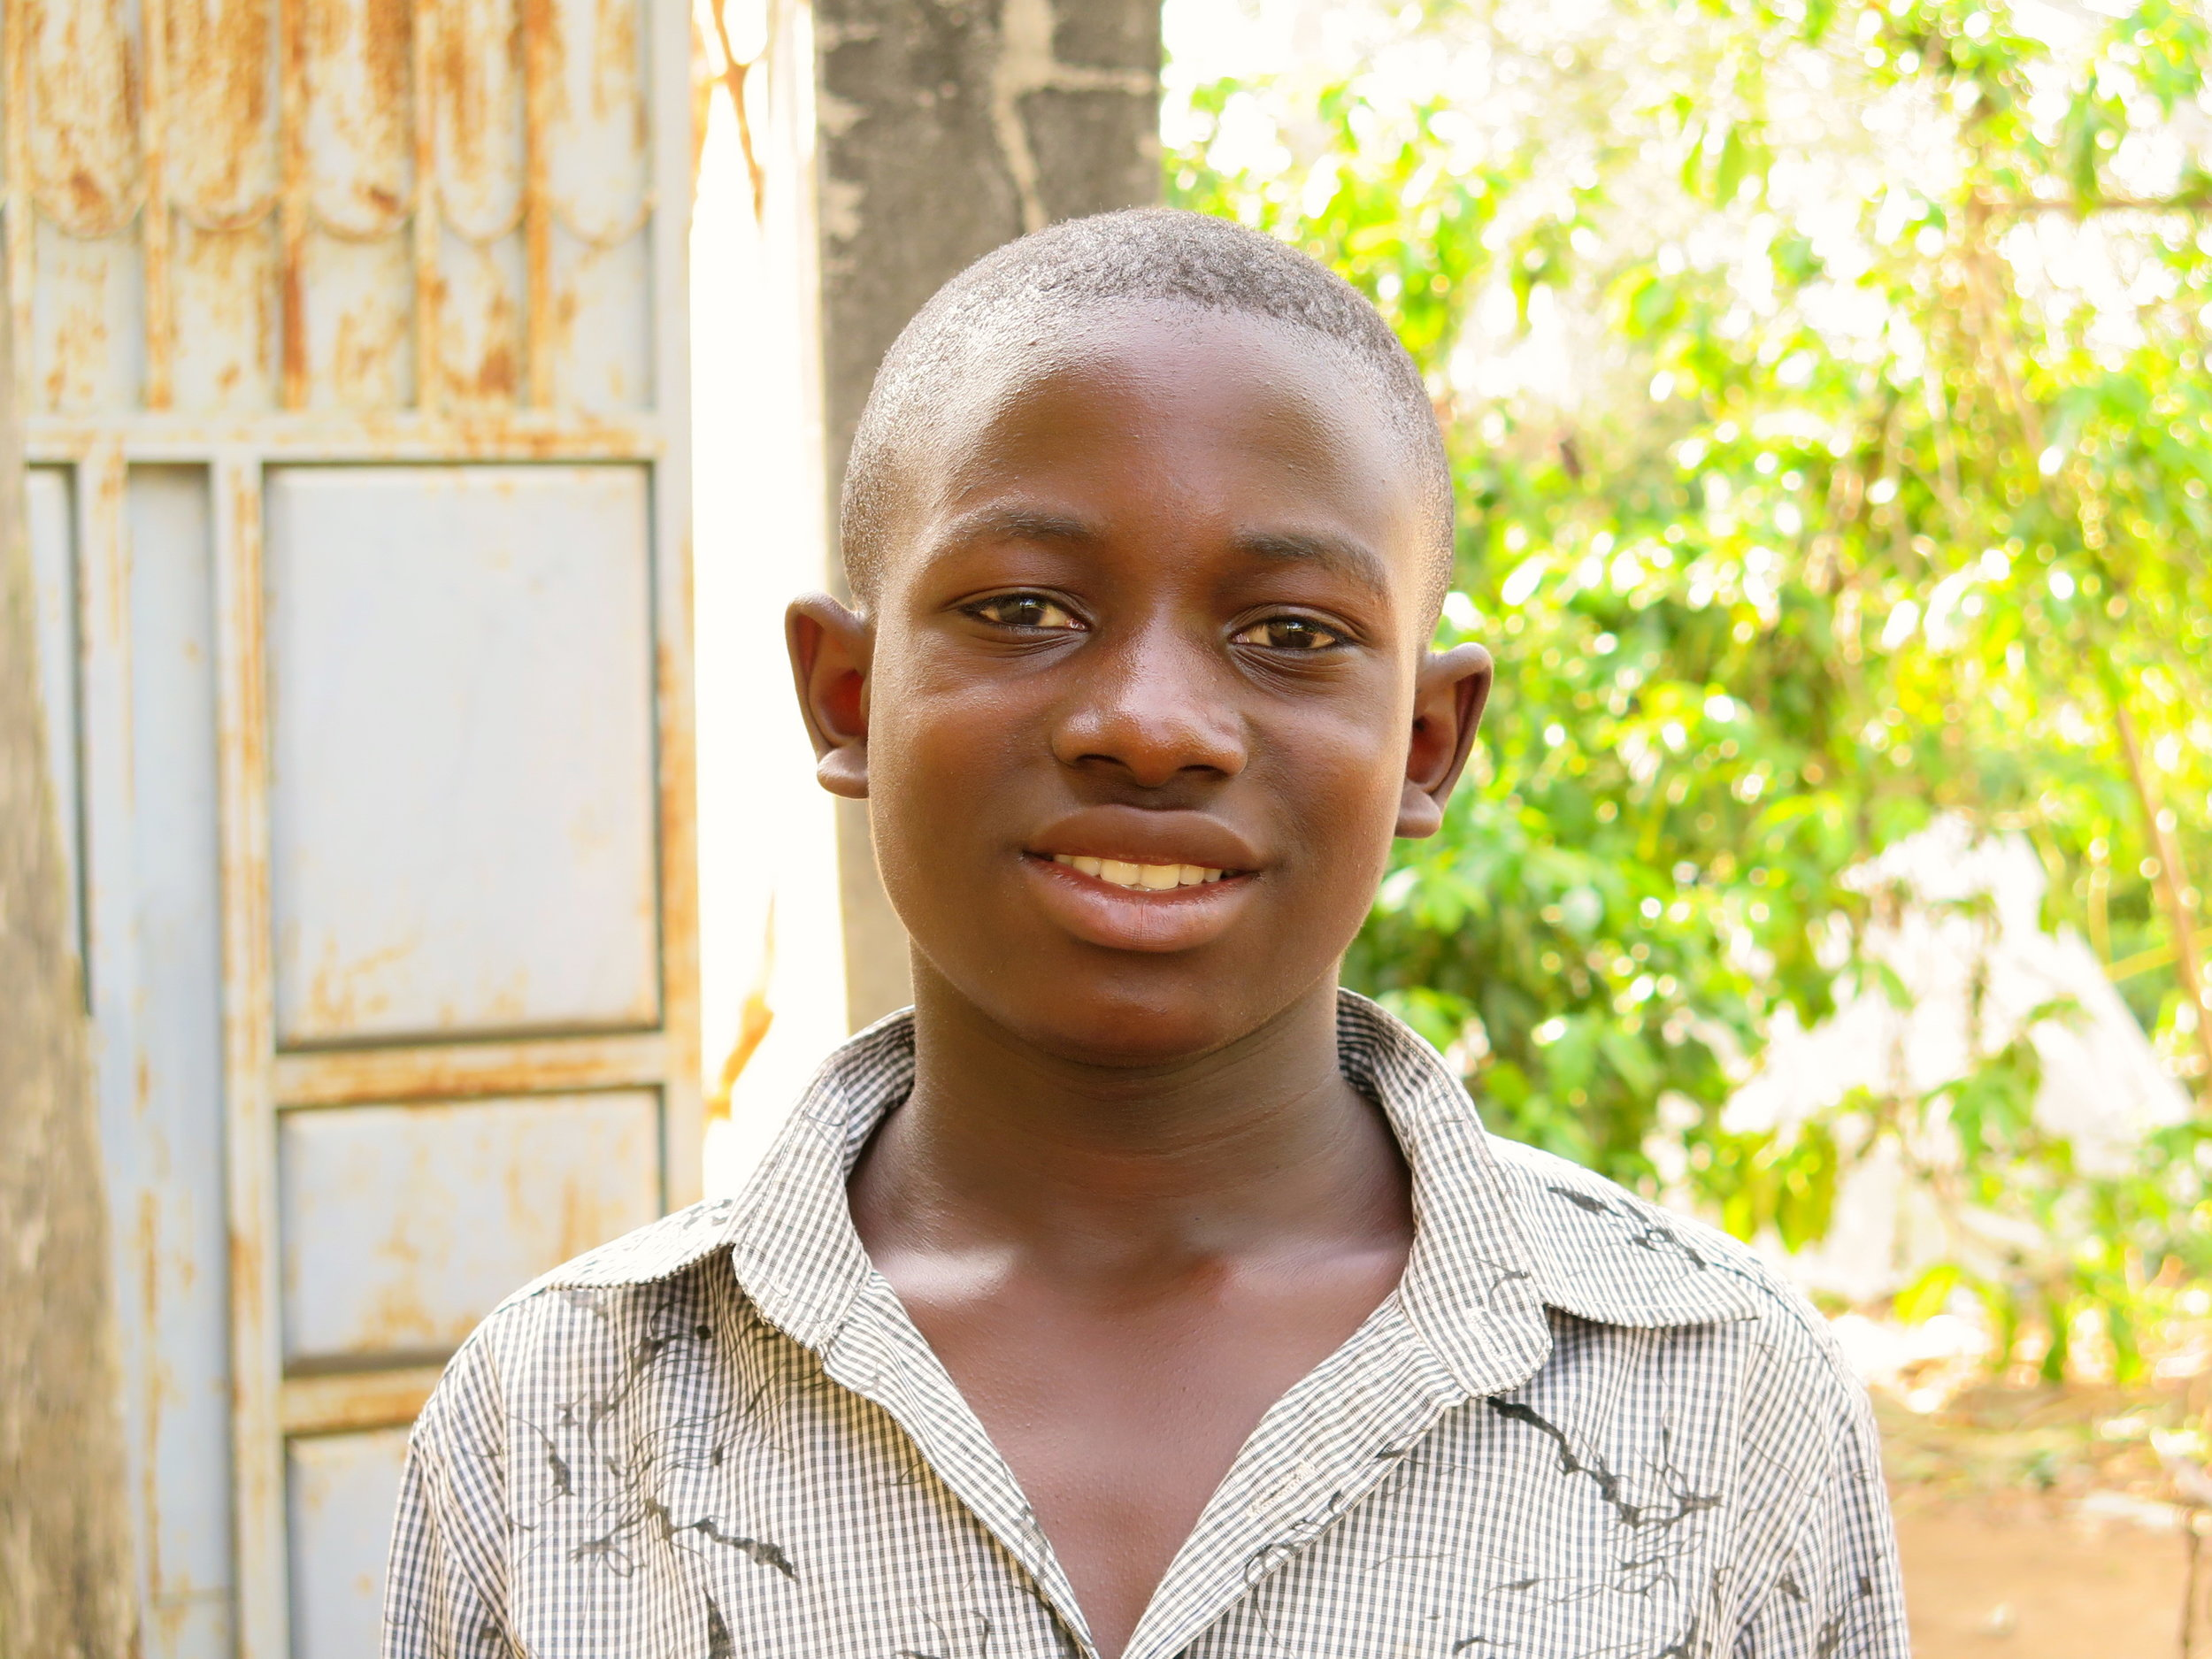 Emma  - in Senior One at Zaake Secondary School. He loves social studies and hopes to become a lawyer.